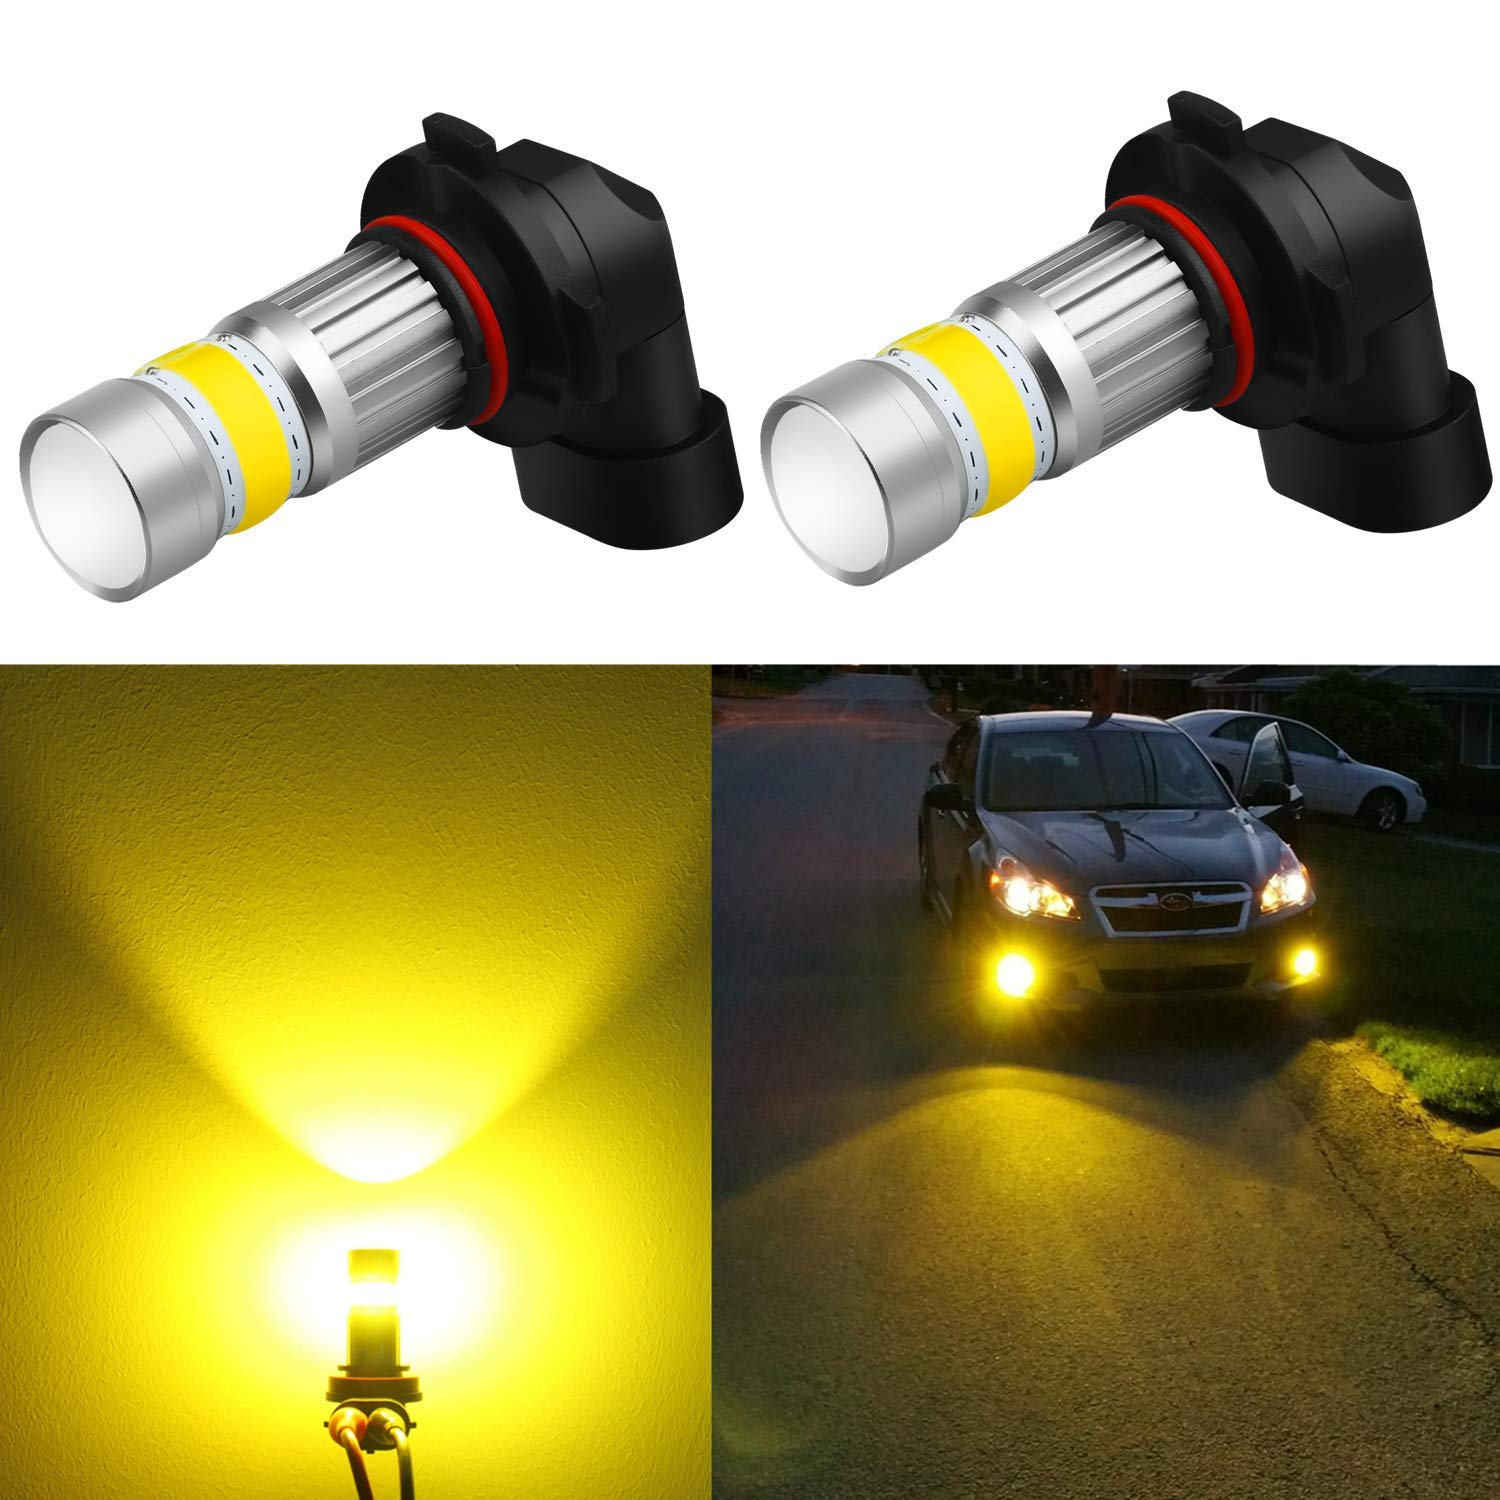 Alla Lighting 2800lm Xtreme Super Bright 9006 LED Bulbs Fog Light High Illumination COB-72 LED 9006 Bulb HB4 9006 Fog Lights Lamp Replacement - 3000K Amber Yellow by Alla Lighting